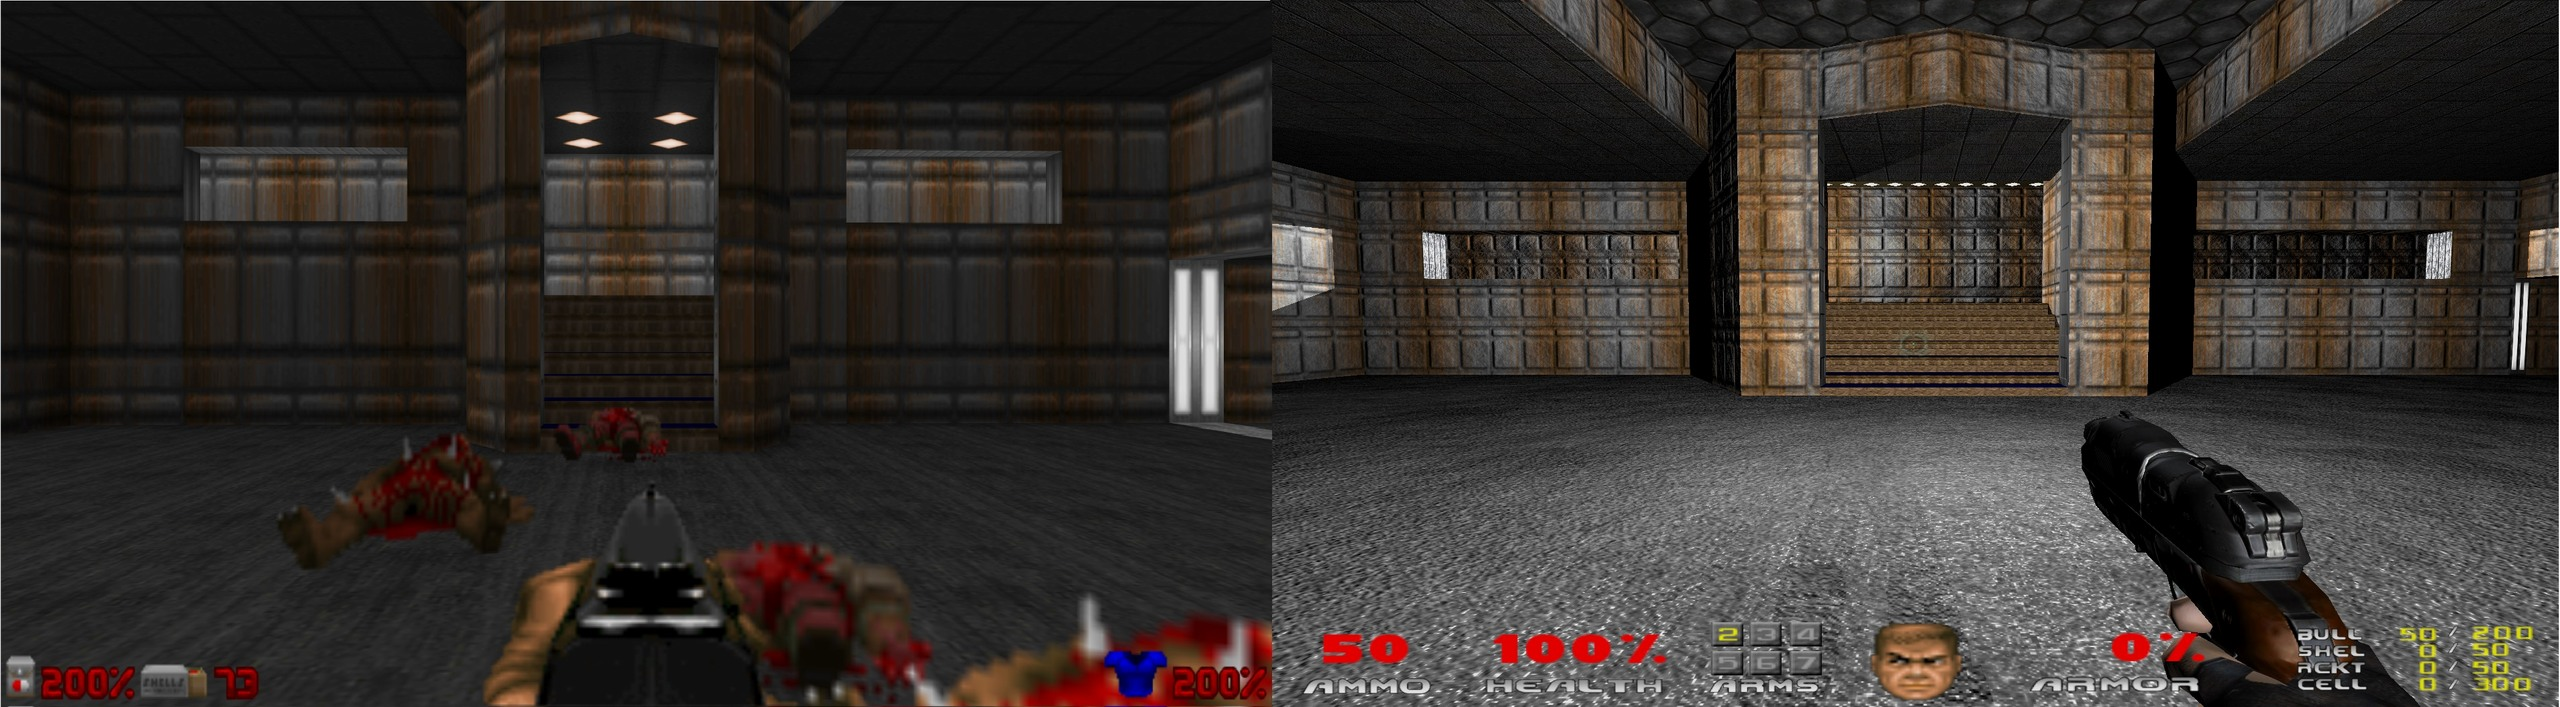 Doom Reborn Is A Doom 3 Mod That Aims To Recreate Classic